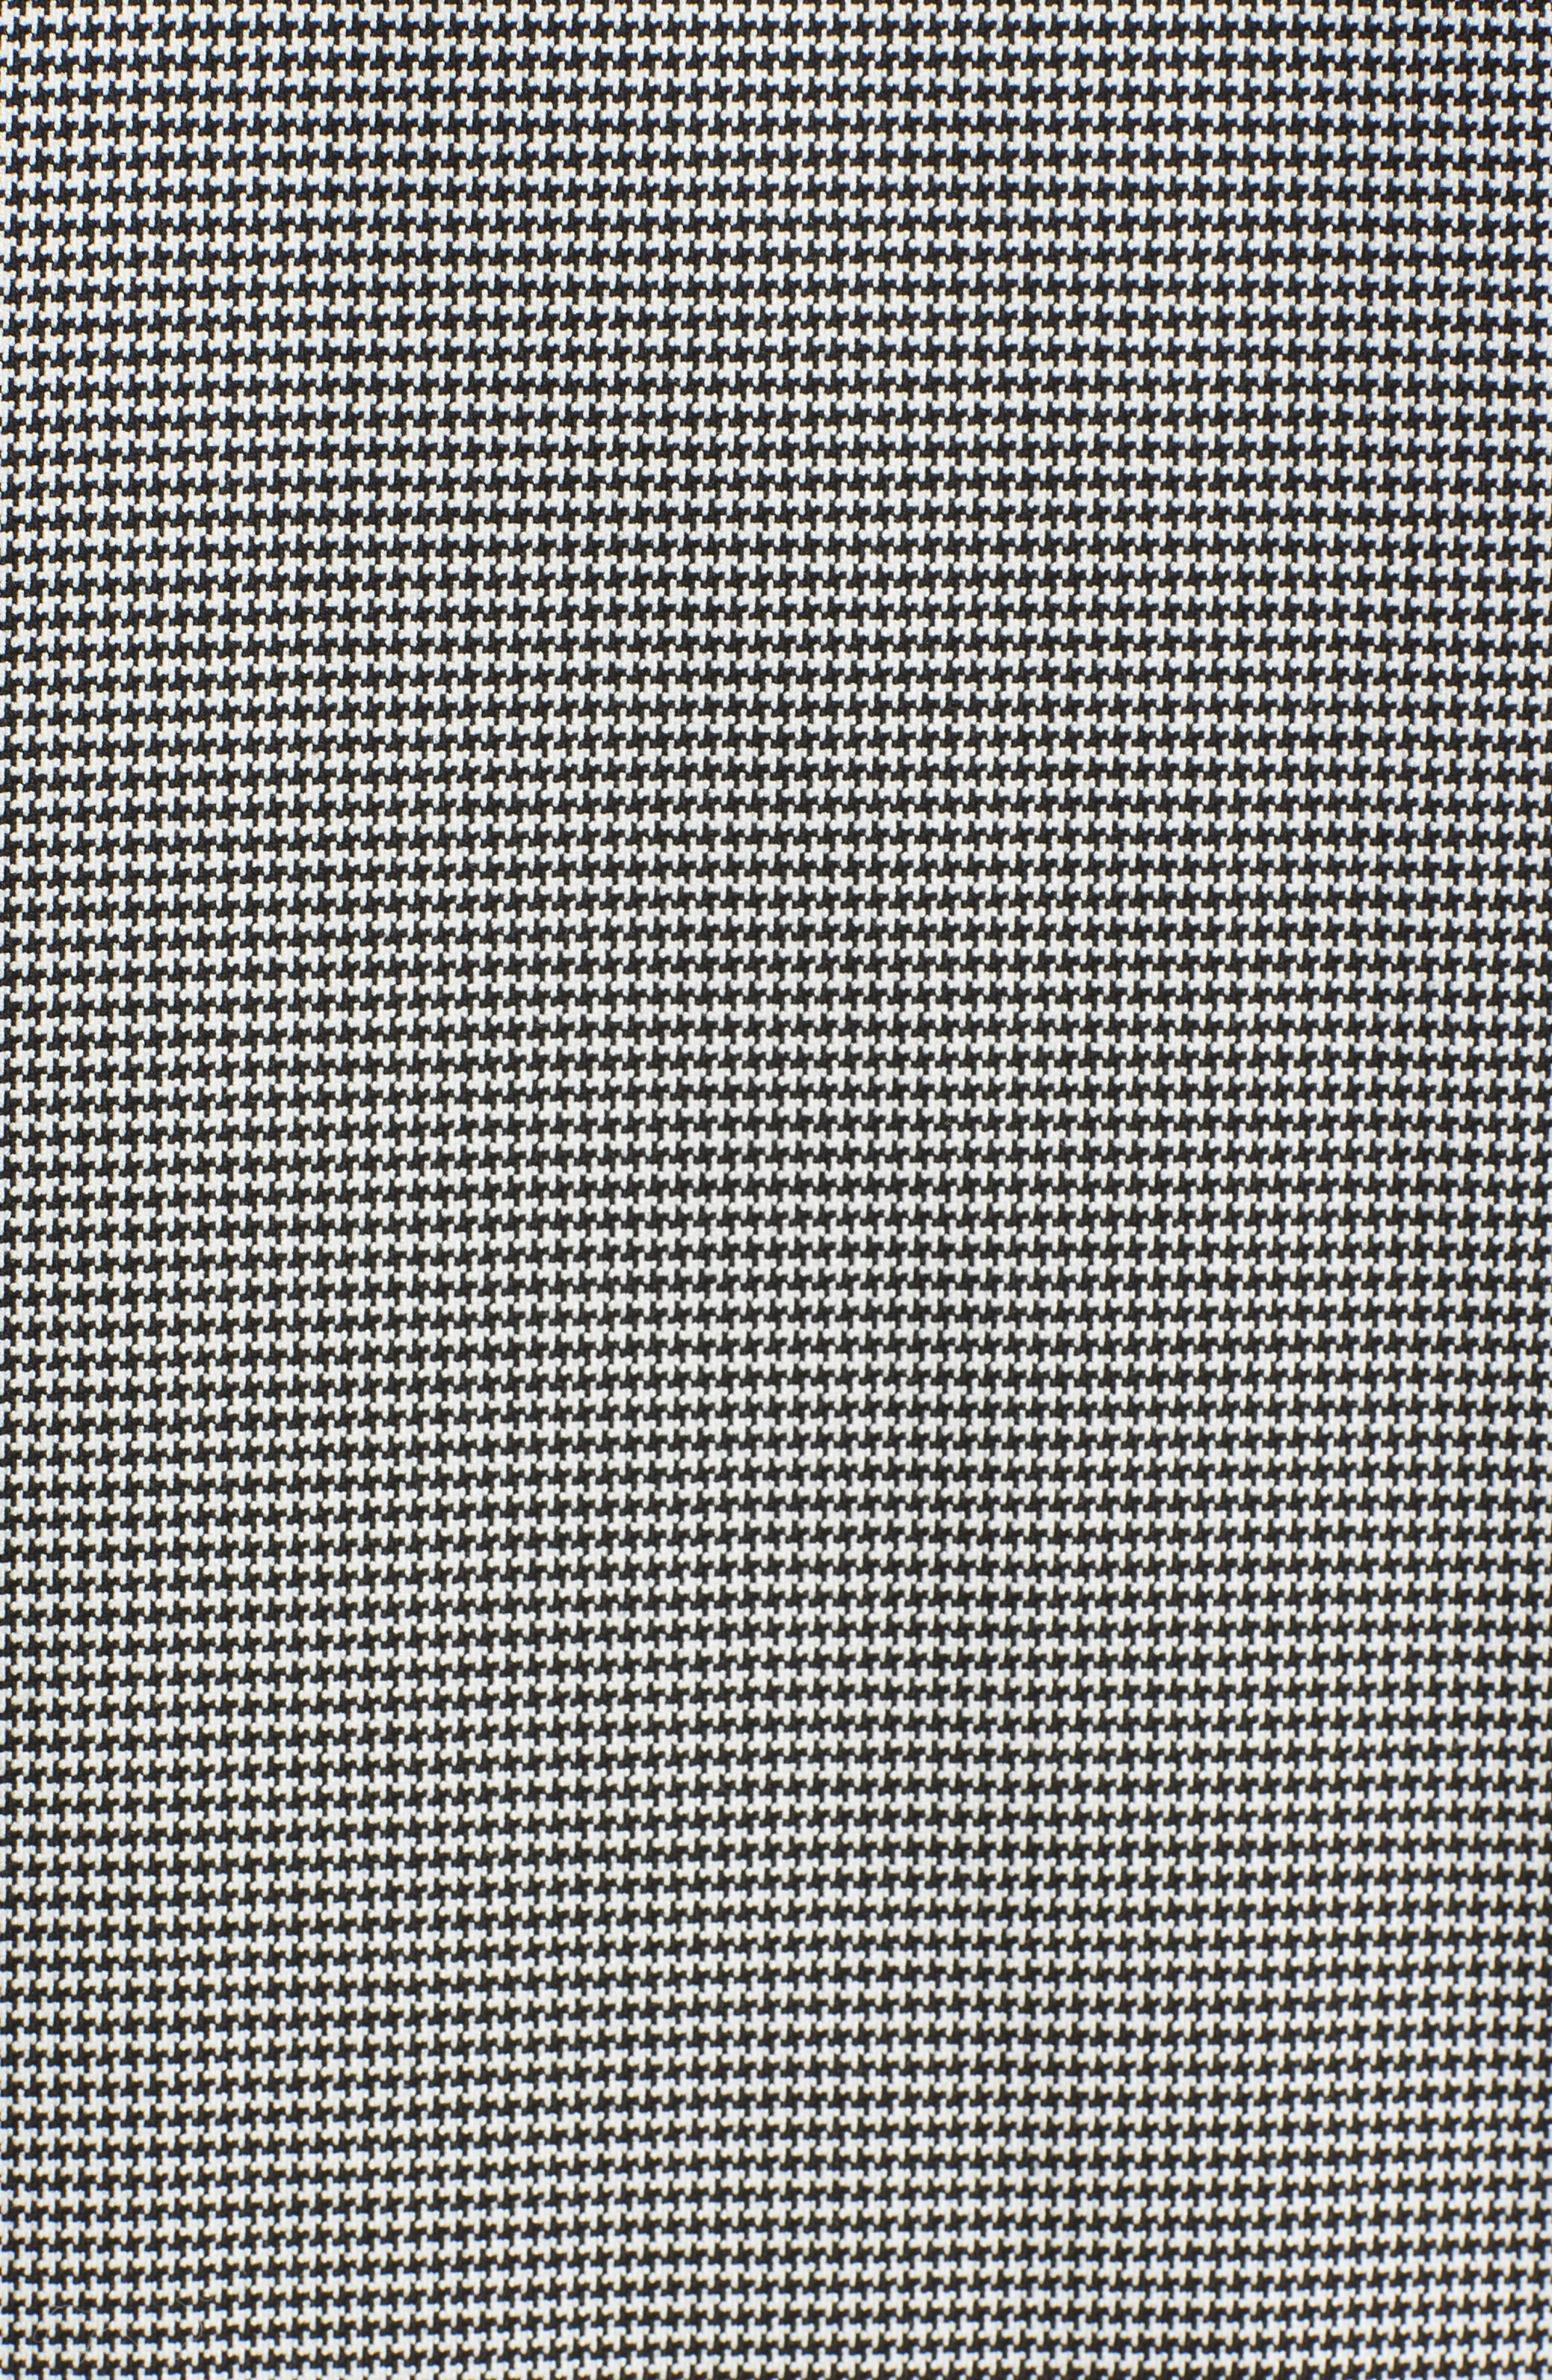 Houndstooth Open Front Jacket,                             Alternate thumbnail 6, color,                             Black- White Houndstooth